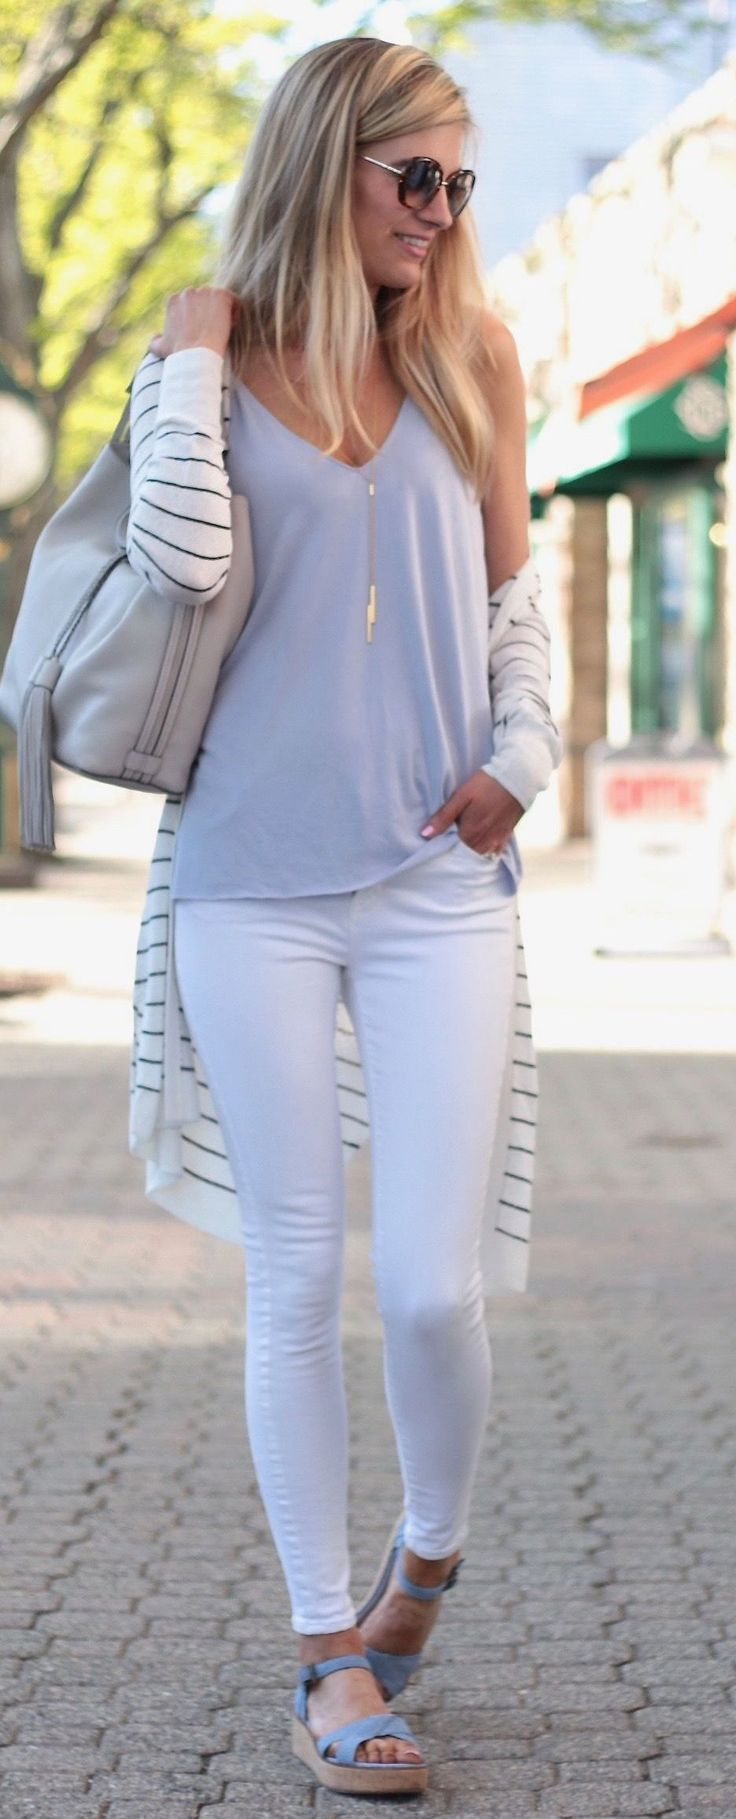 45 Fascinating Spring Outfits To Wear Everyday / 29 - yvonne vasquez 45 Fascinating Spring Outfits To Wear Everyday / 29 - yvonne vasquez -